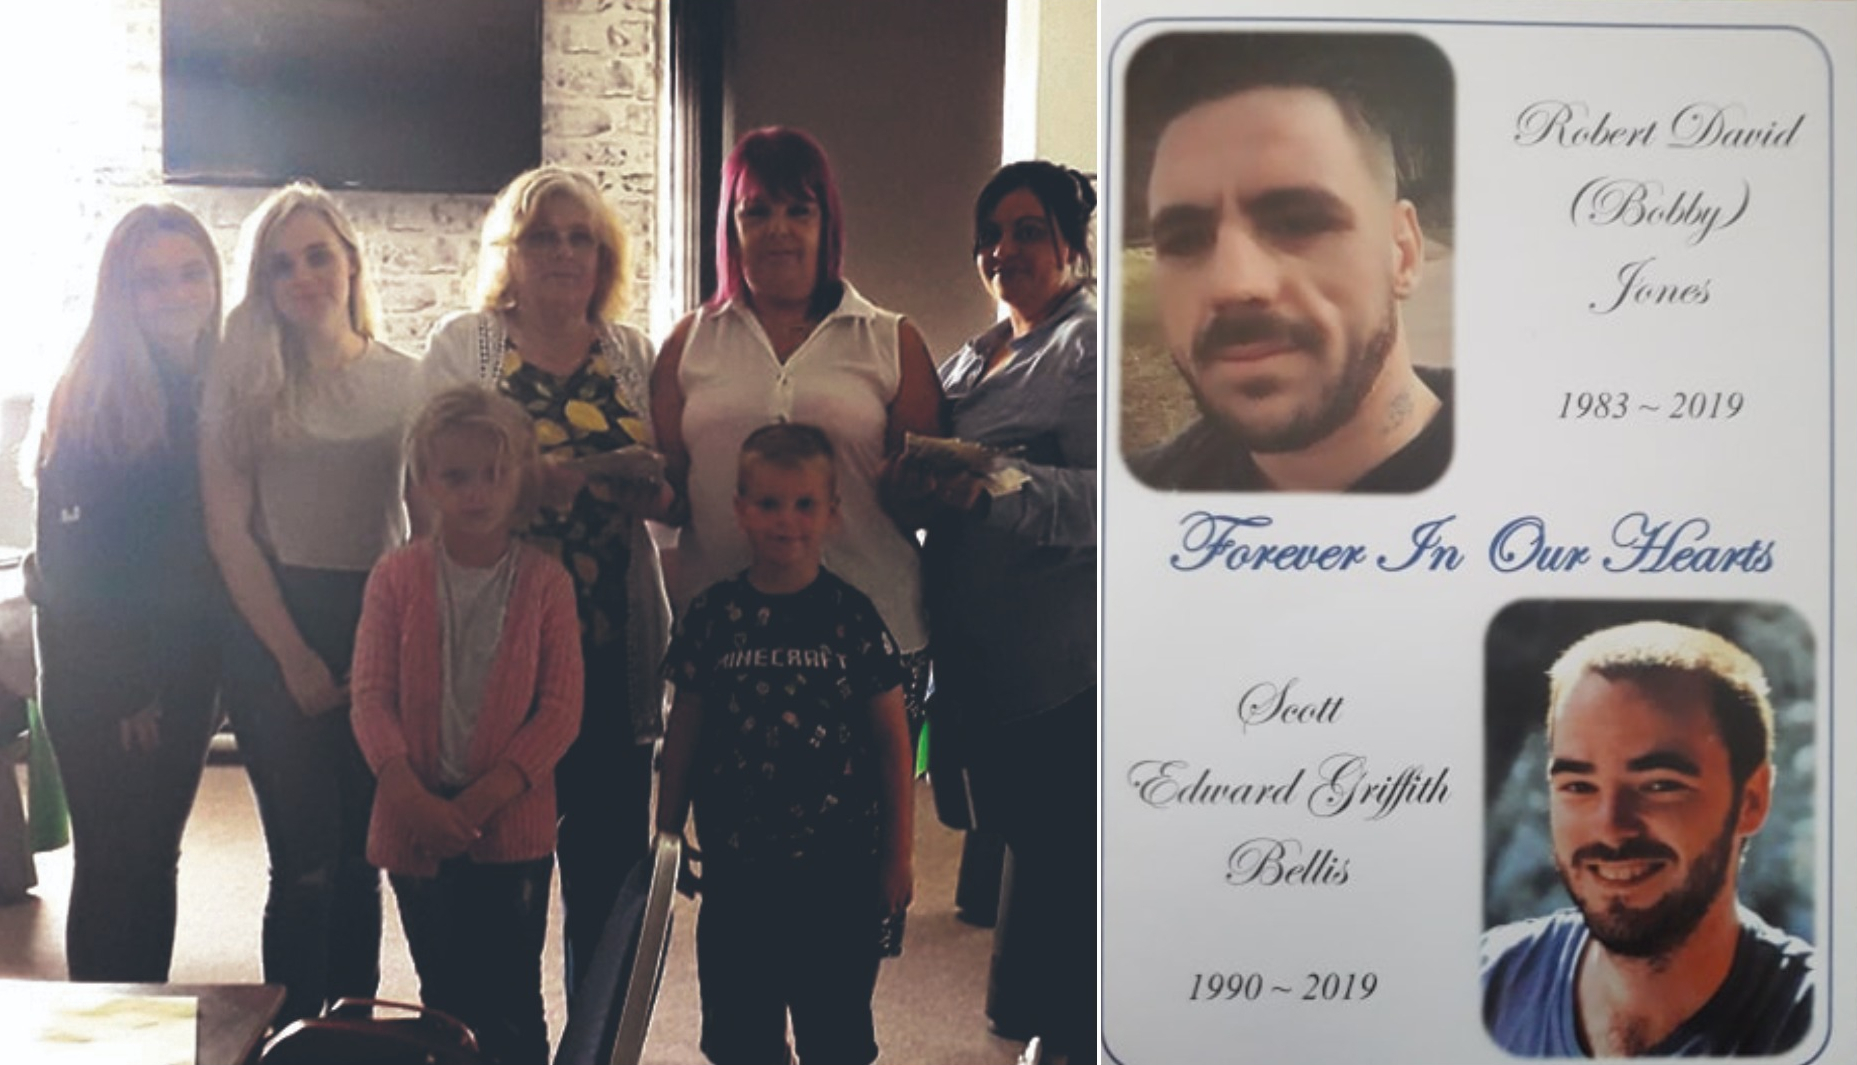 Wrexham mum who lost her two sons within 24 hours thanks community for helping raising funds to cover funeral costs